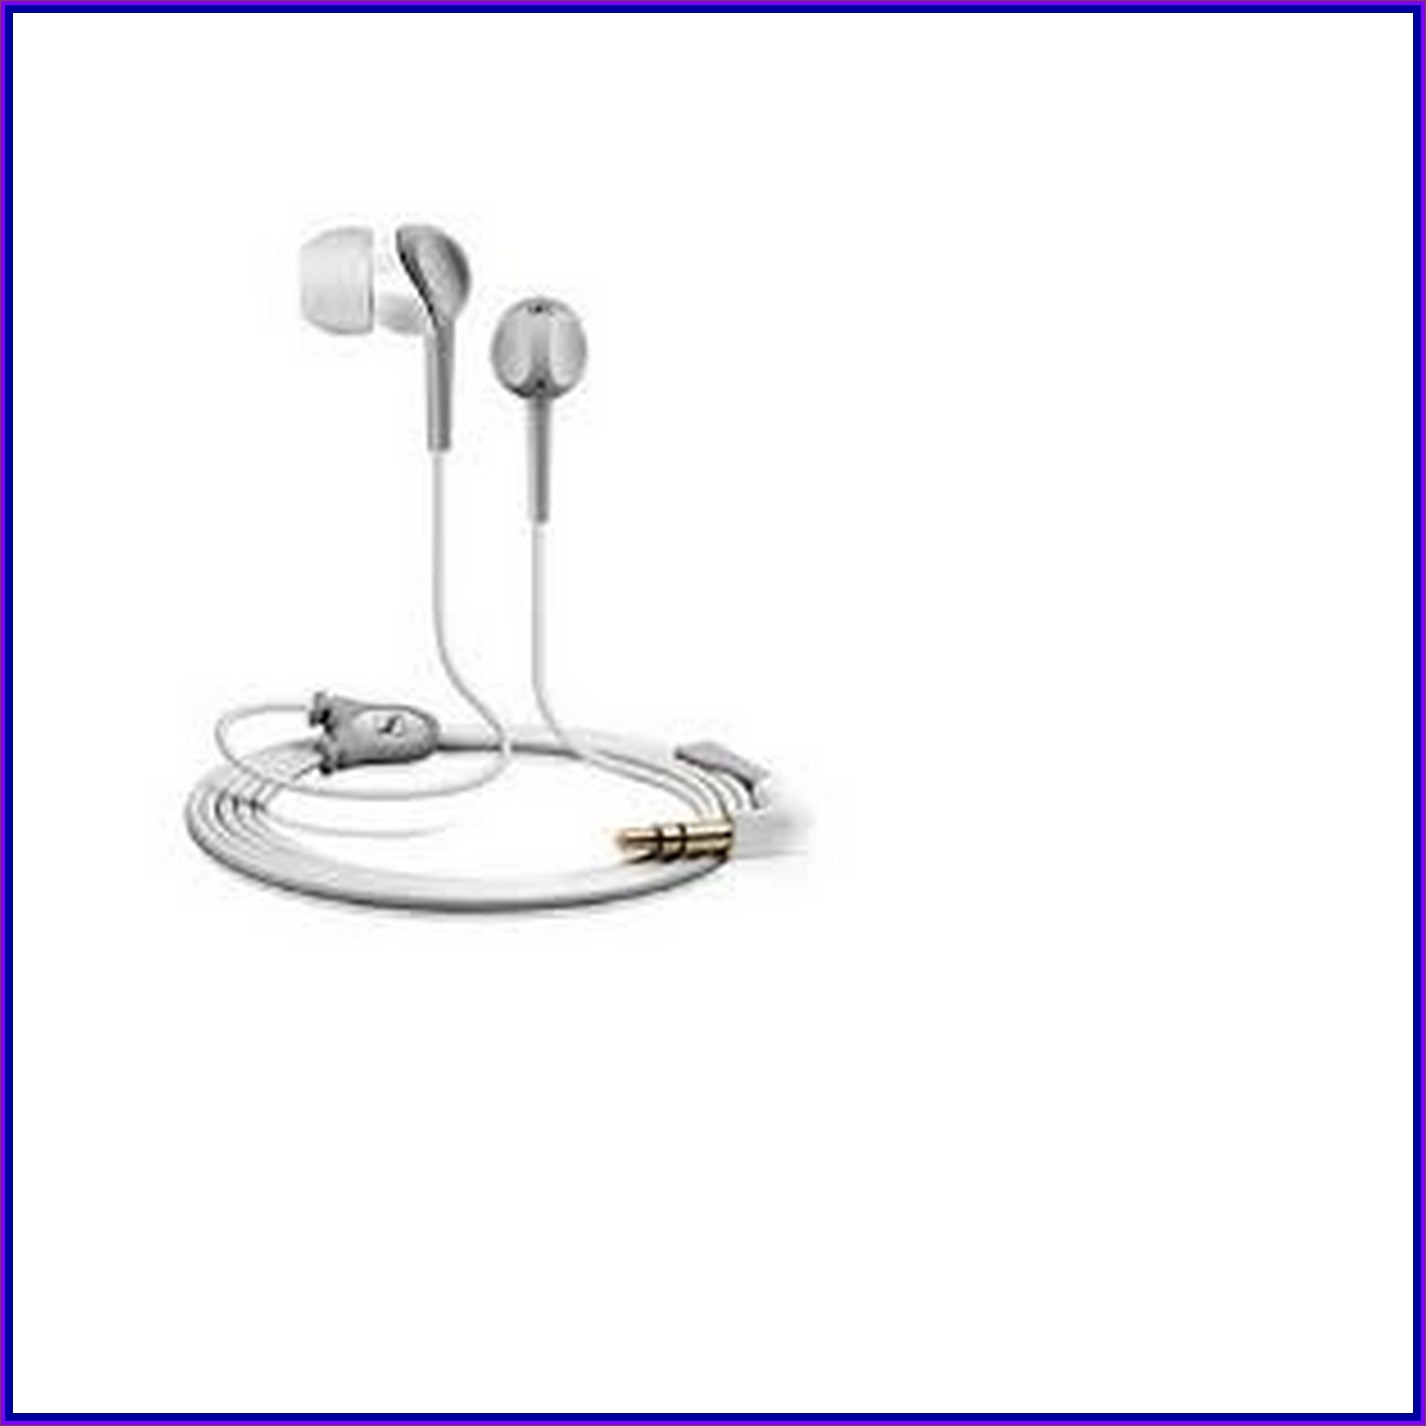 ... Sennheiser Earphone CX213 White In-ear Headphone